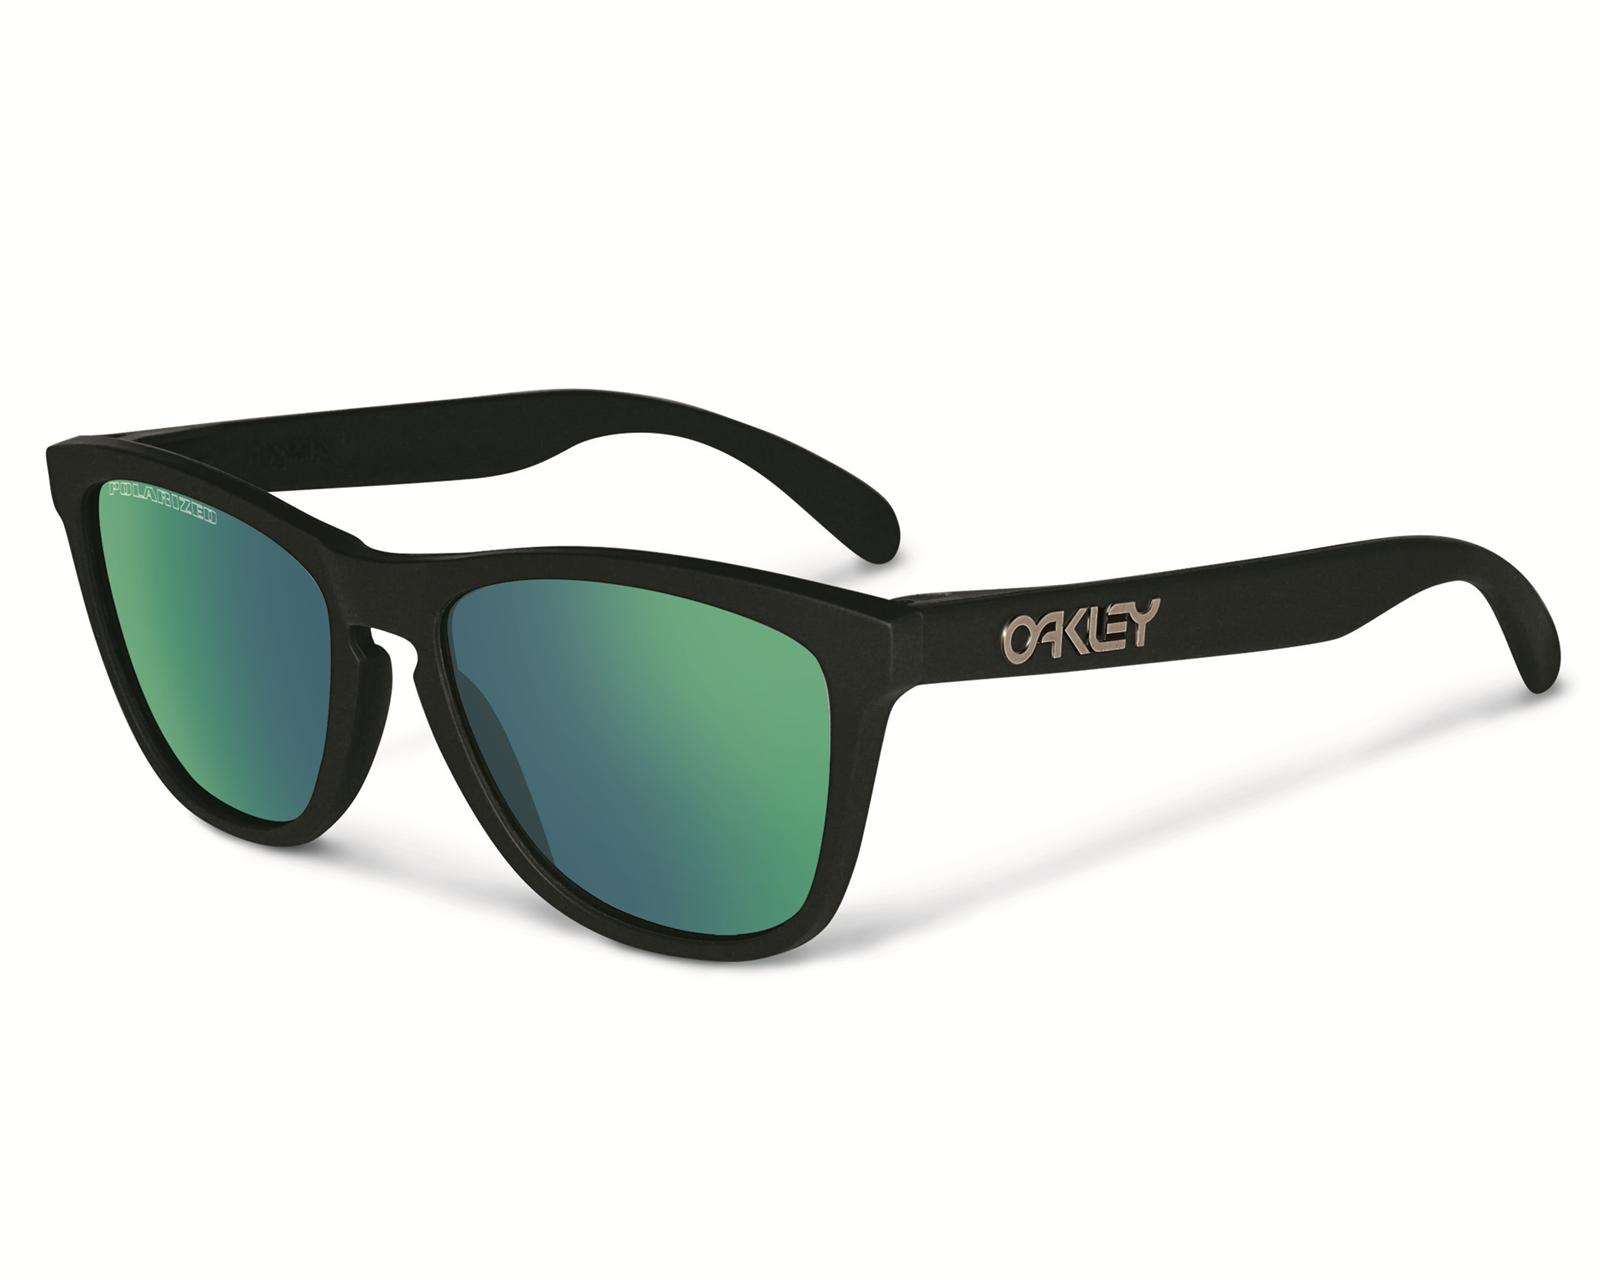 7c0eb32aa3 Oakley Frogskins Sunglasses 24-404 - Free Shipping on Orders Over  99 at  Summit Racing